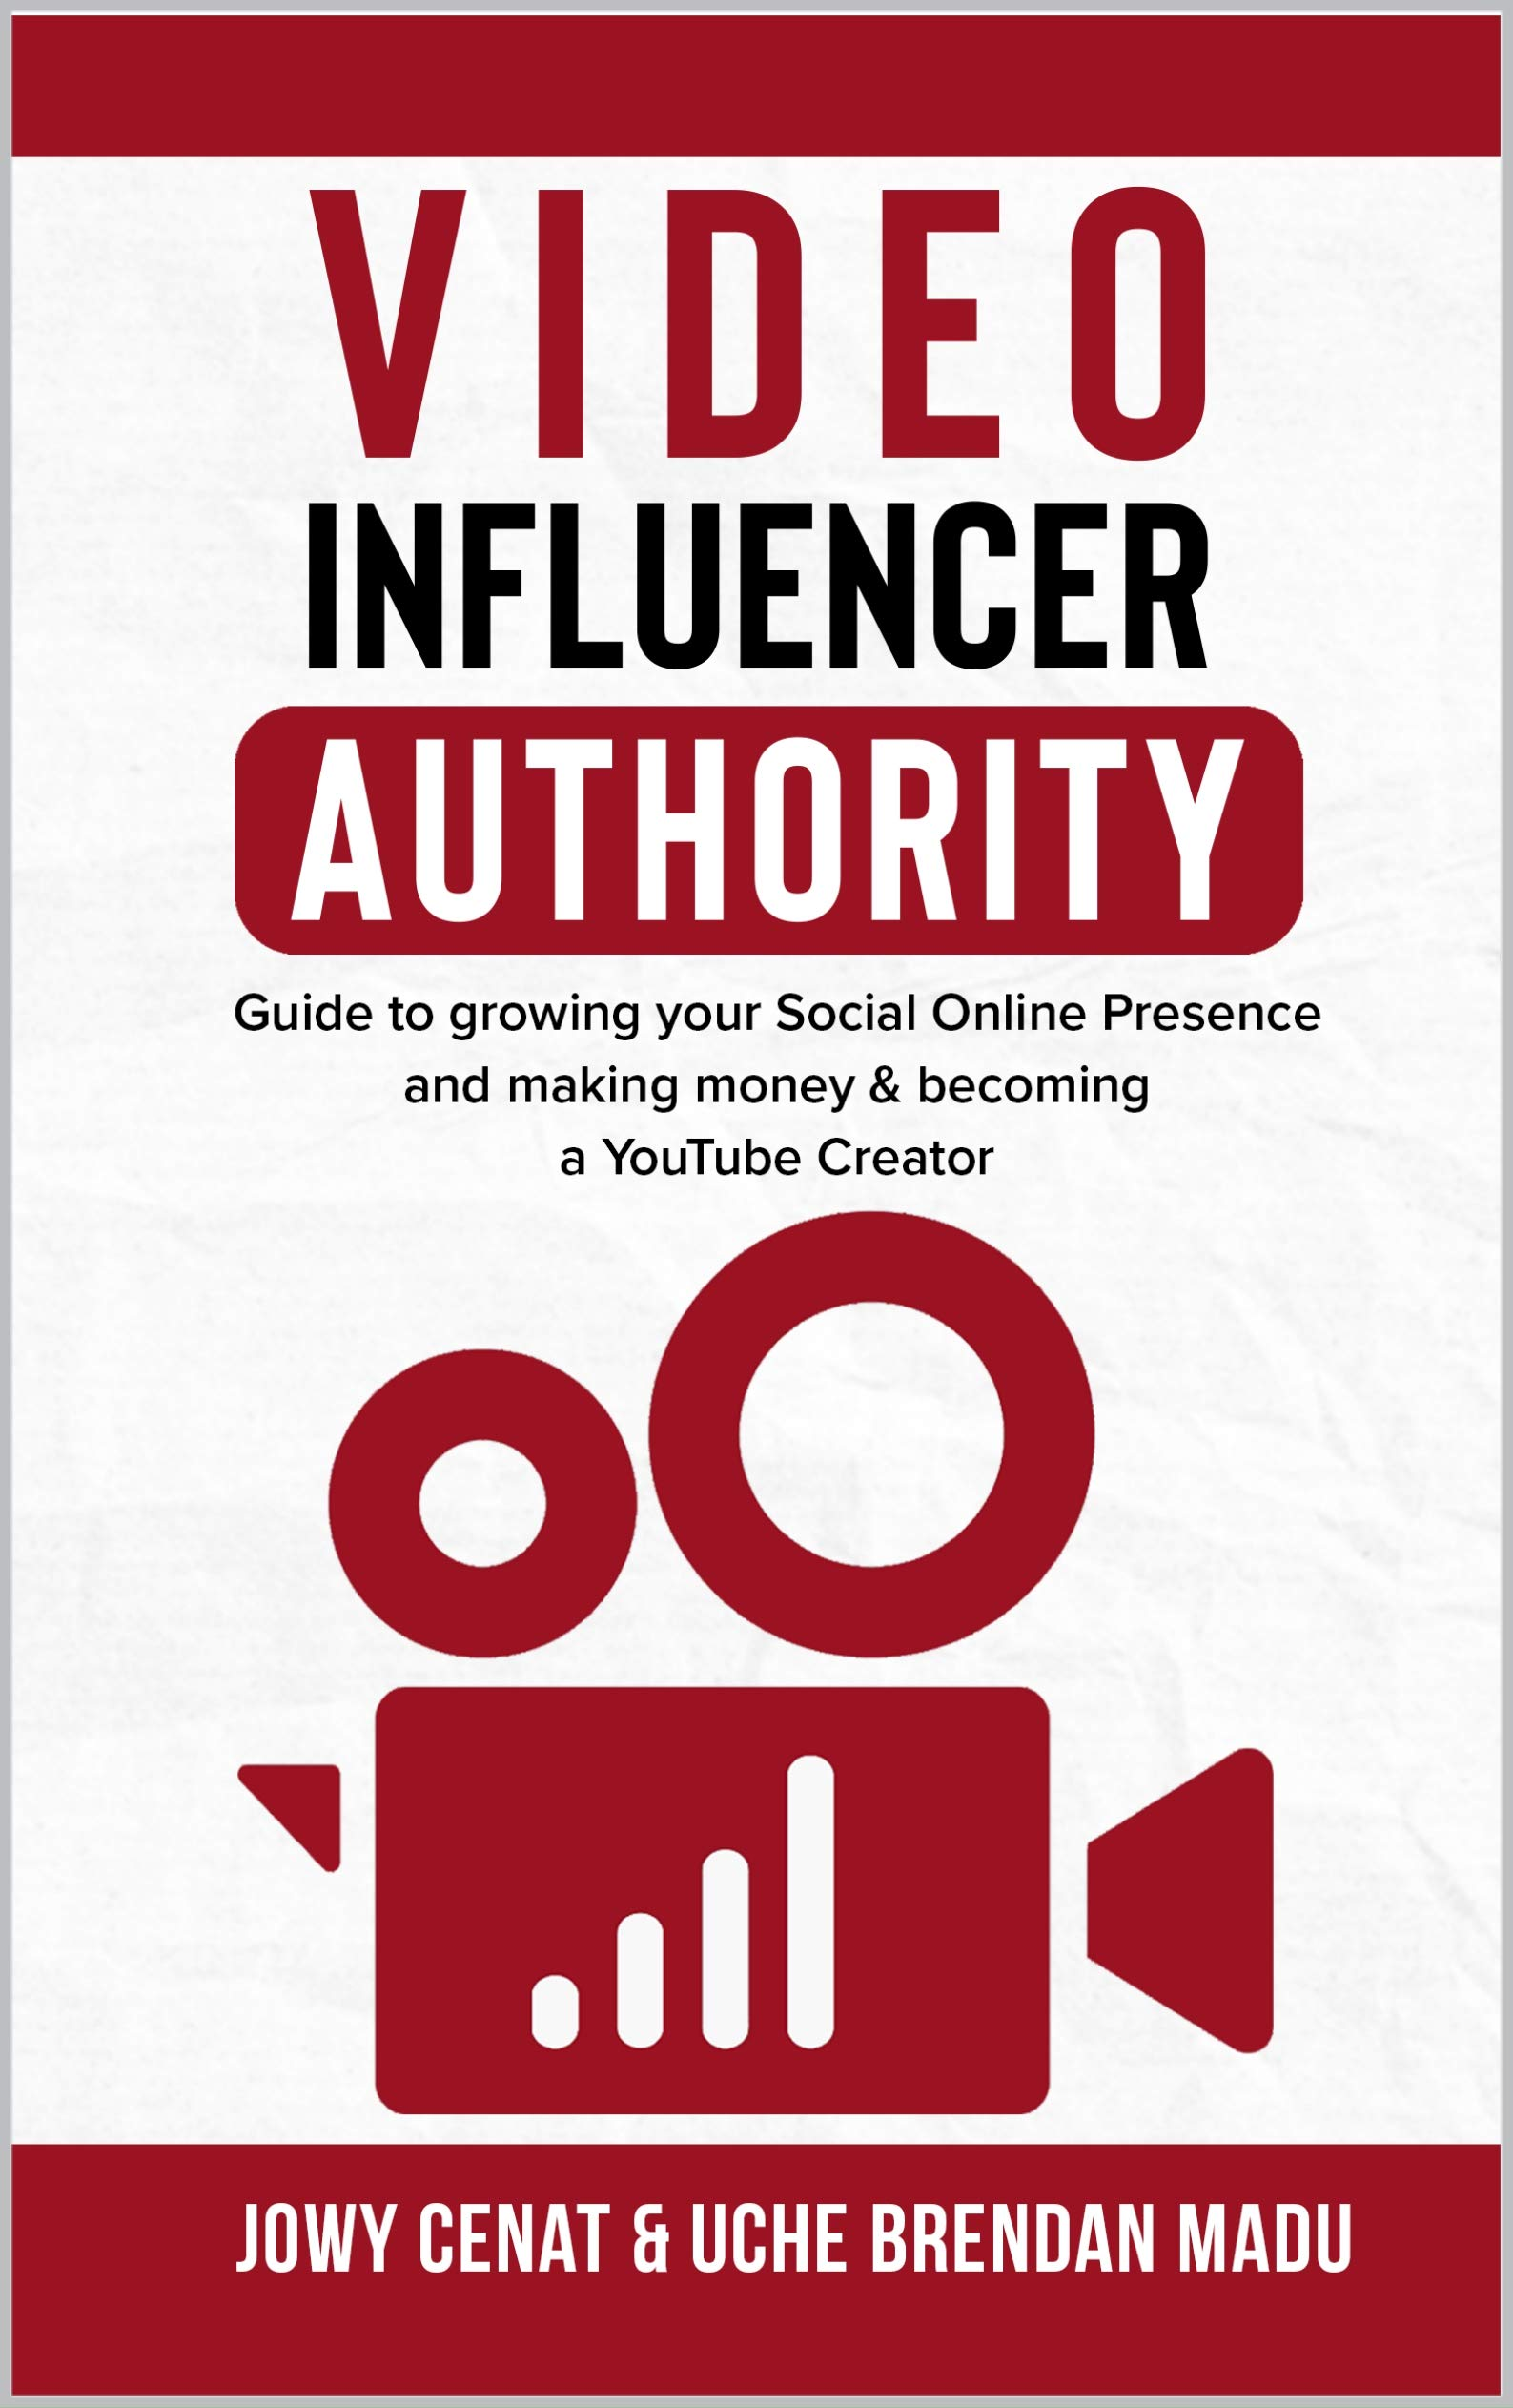 Video Influencer Authority: : Guide To Growing Your Social Online Presence & Making Money, Becoming A YouTube Creator